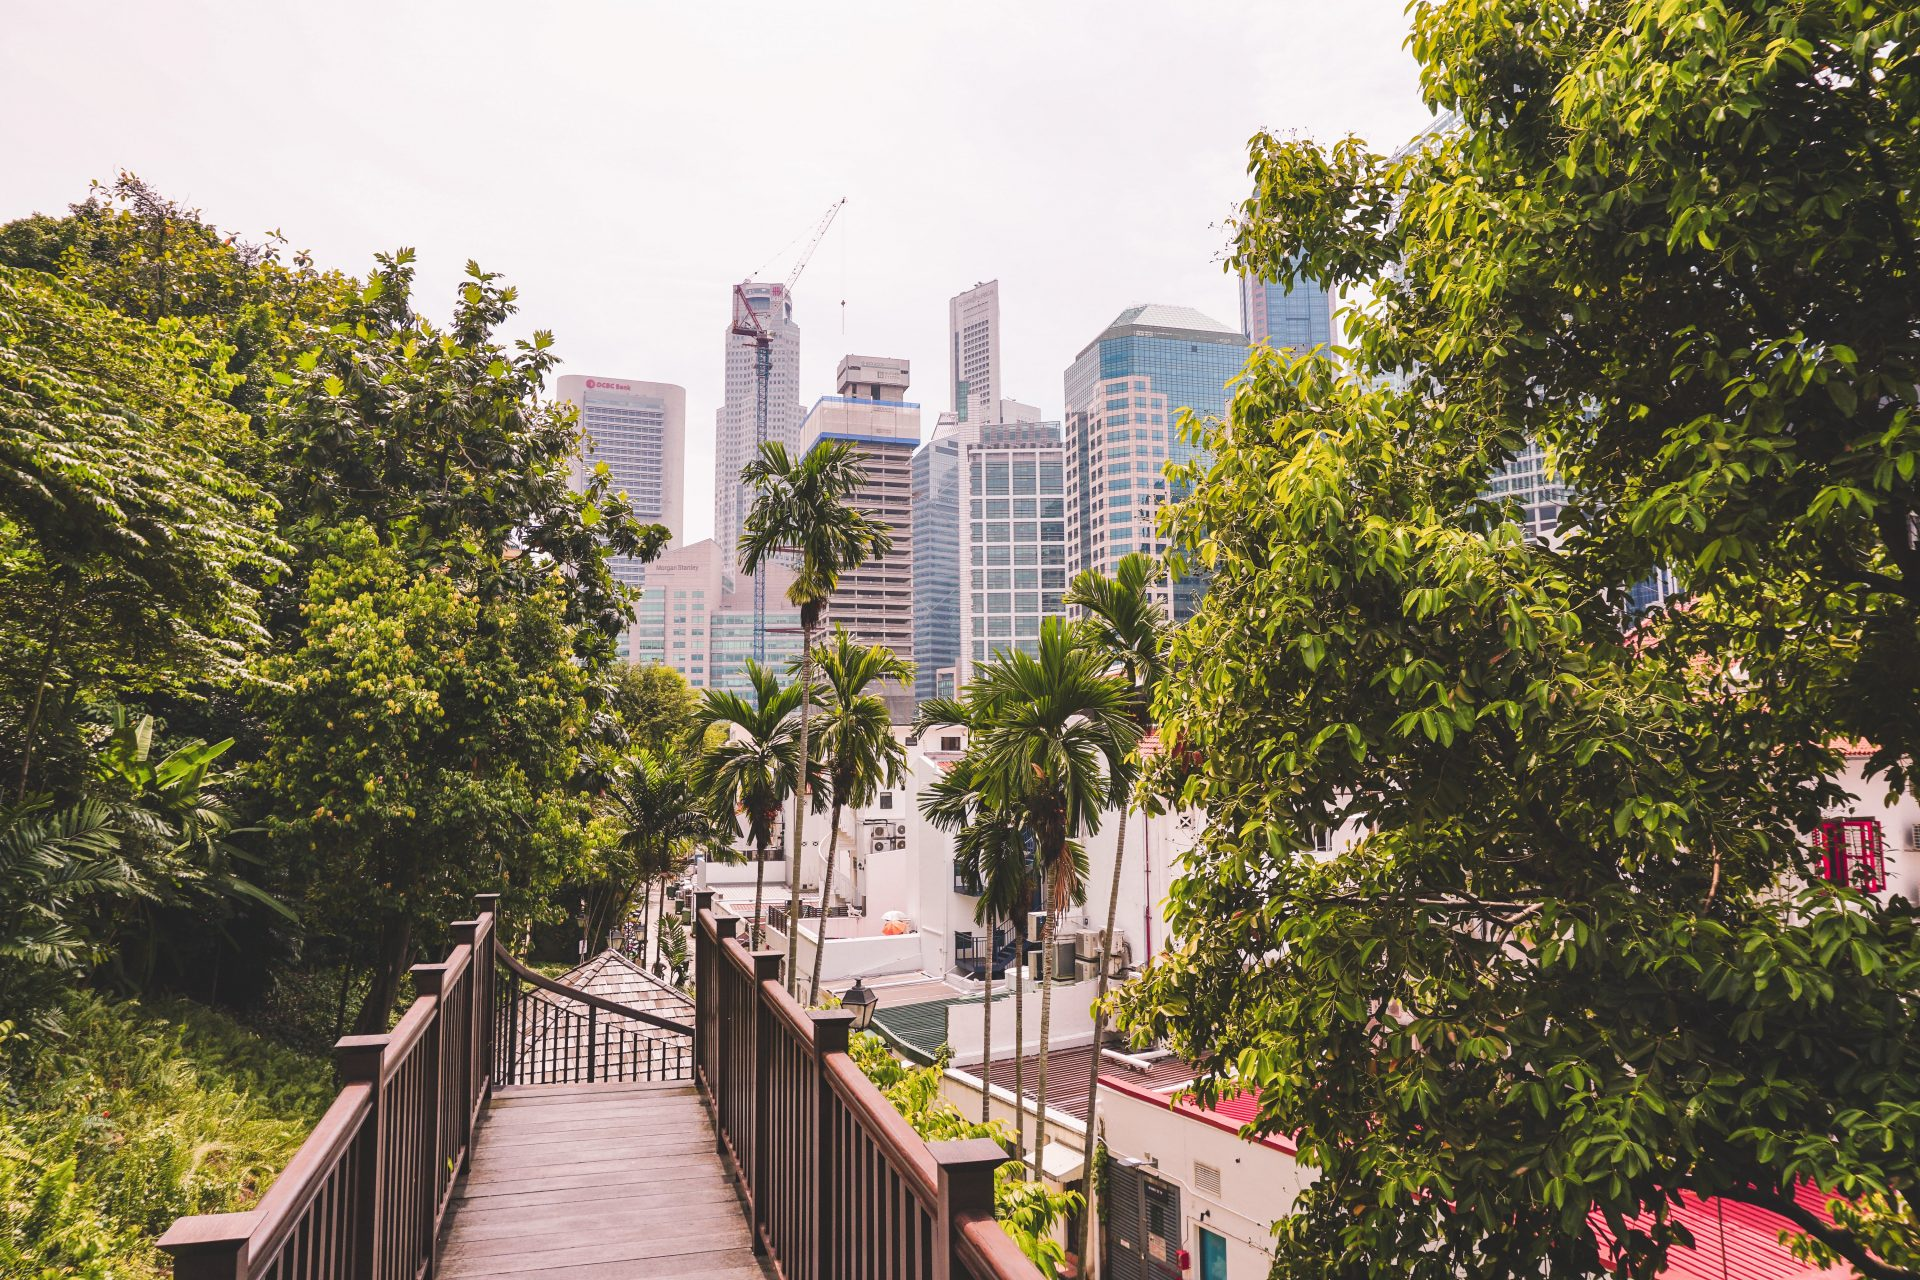 View of Singapore from small walkway